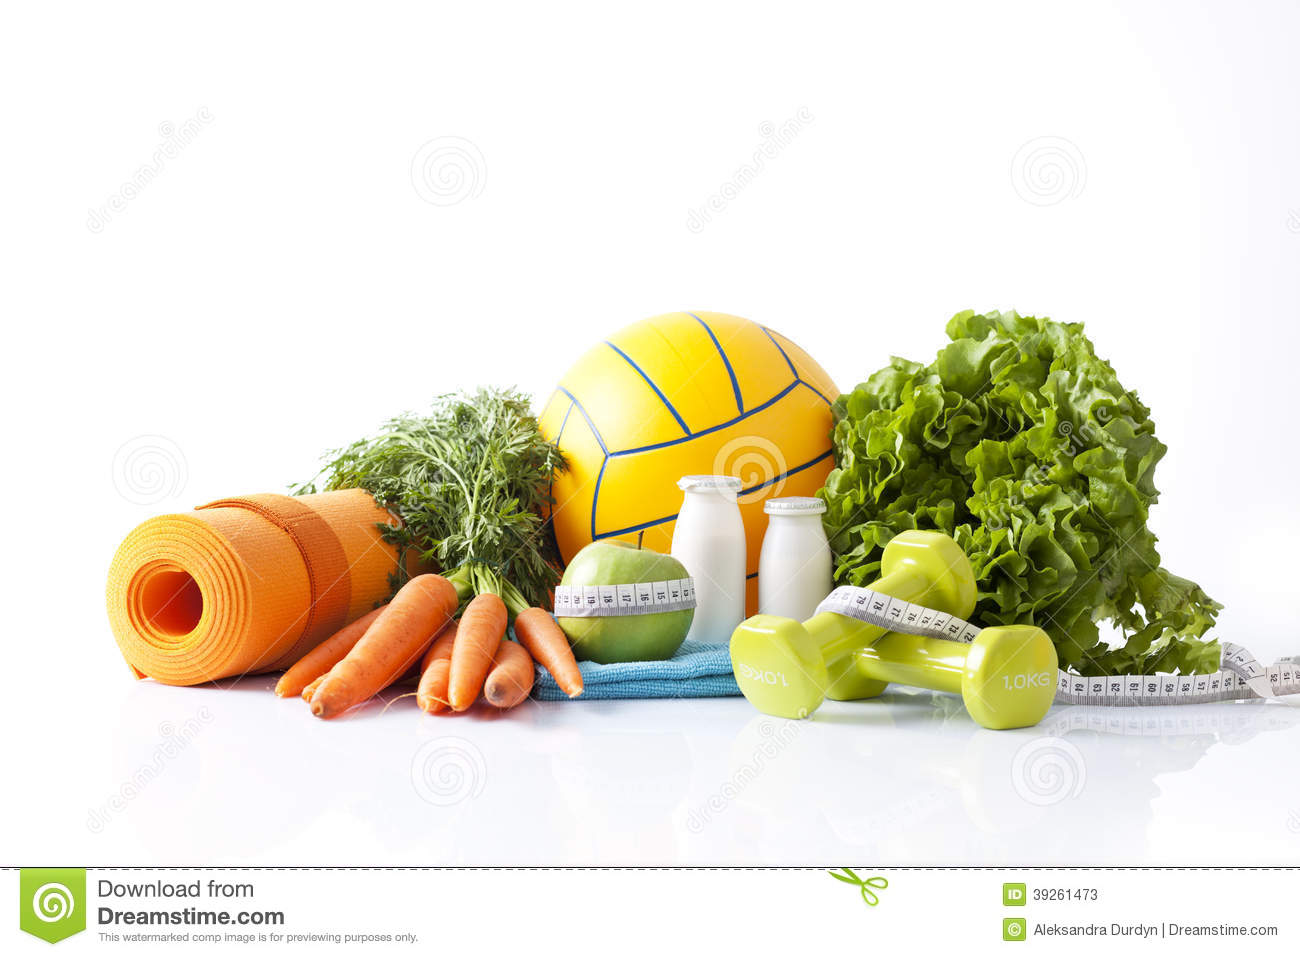 Items for healthy physical activity and health food.